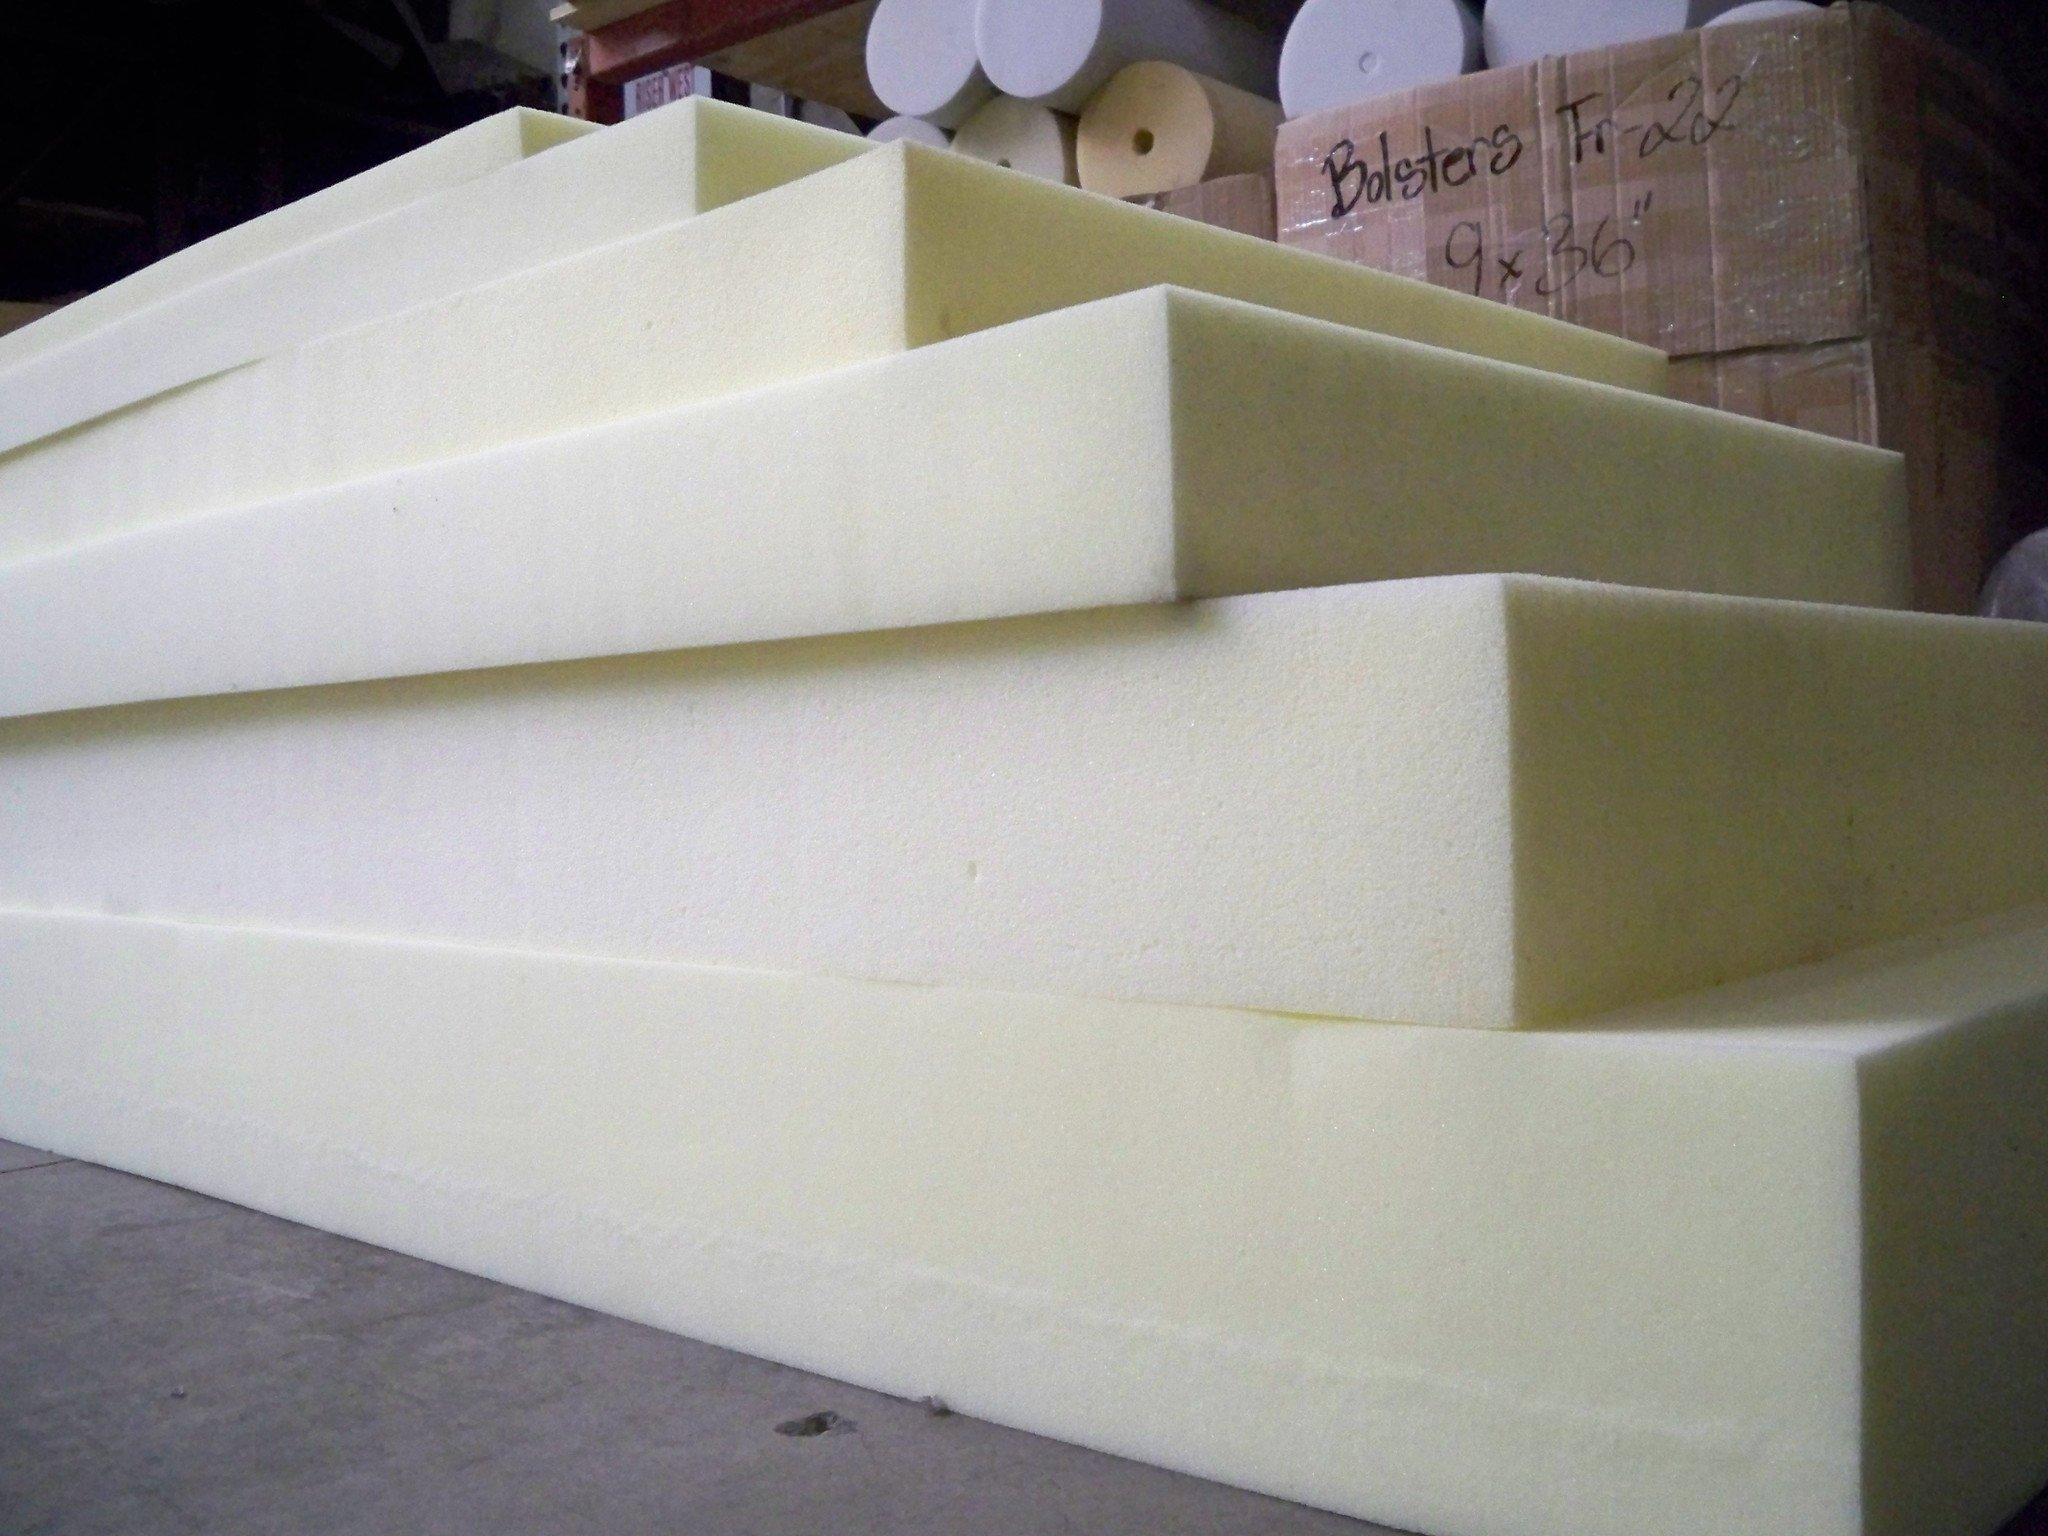 High Density Foam Upholstery | Types of Upholstery Foam | High Density Upholstery Foam